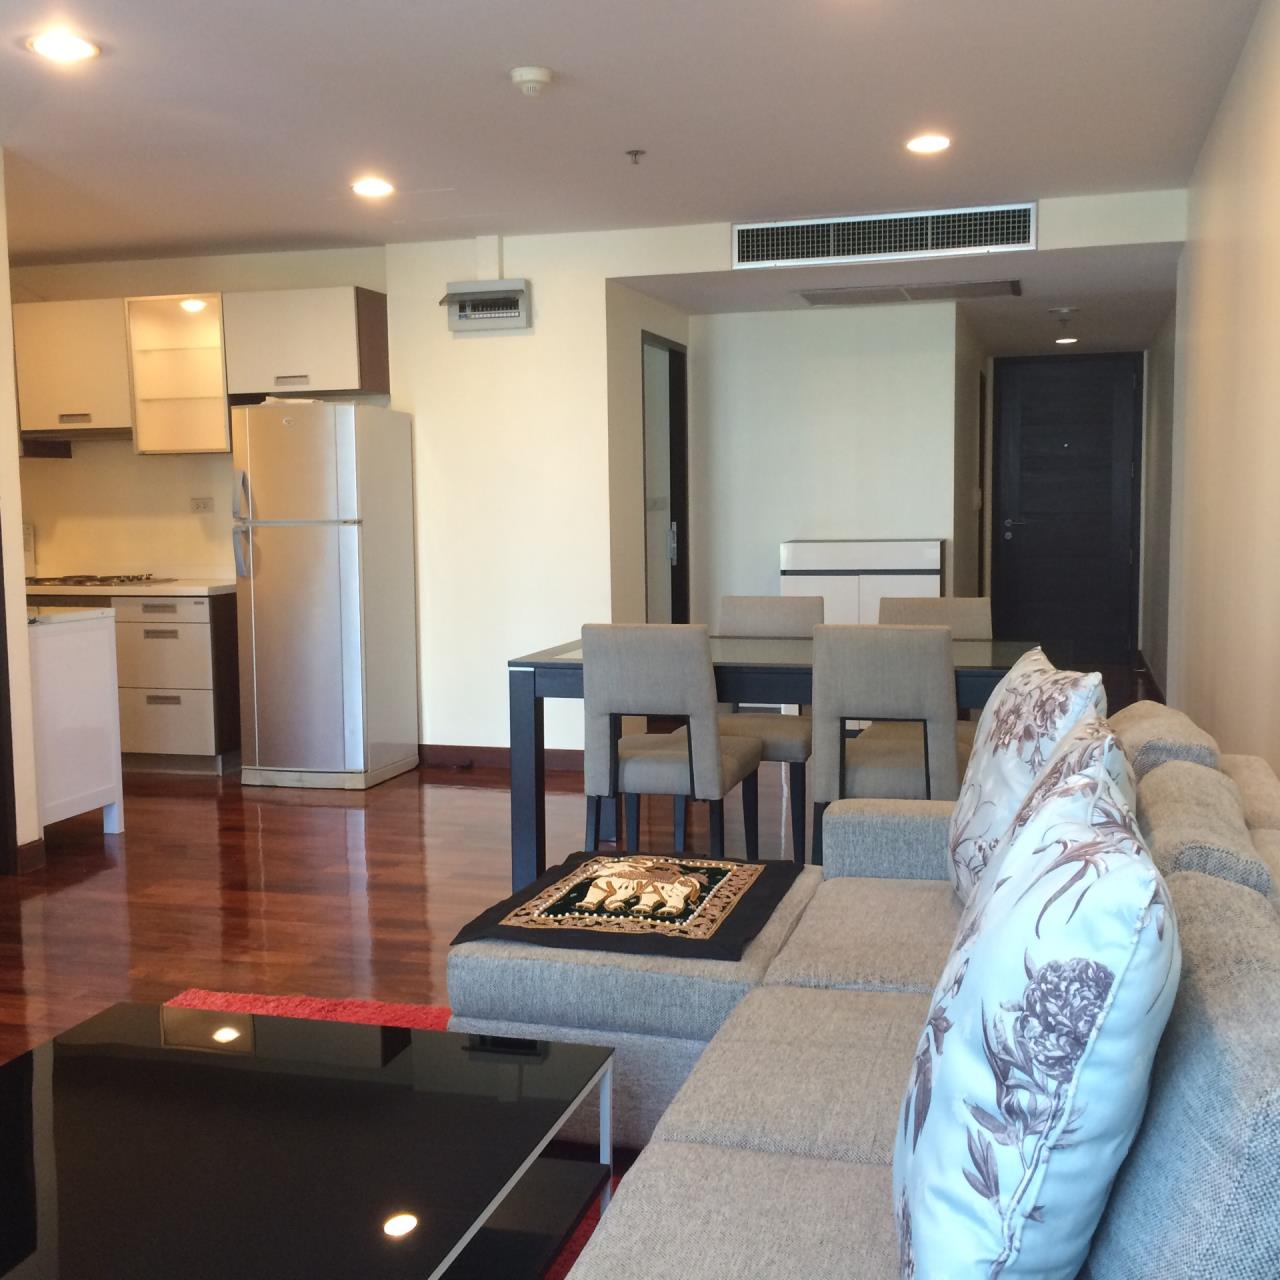 Quality Life Property Agency's 1-BEDROOM CONDO FOR RENT IN URBANA LANGSUAN 17 FOOR 2